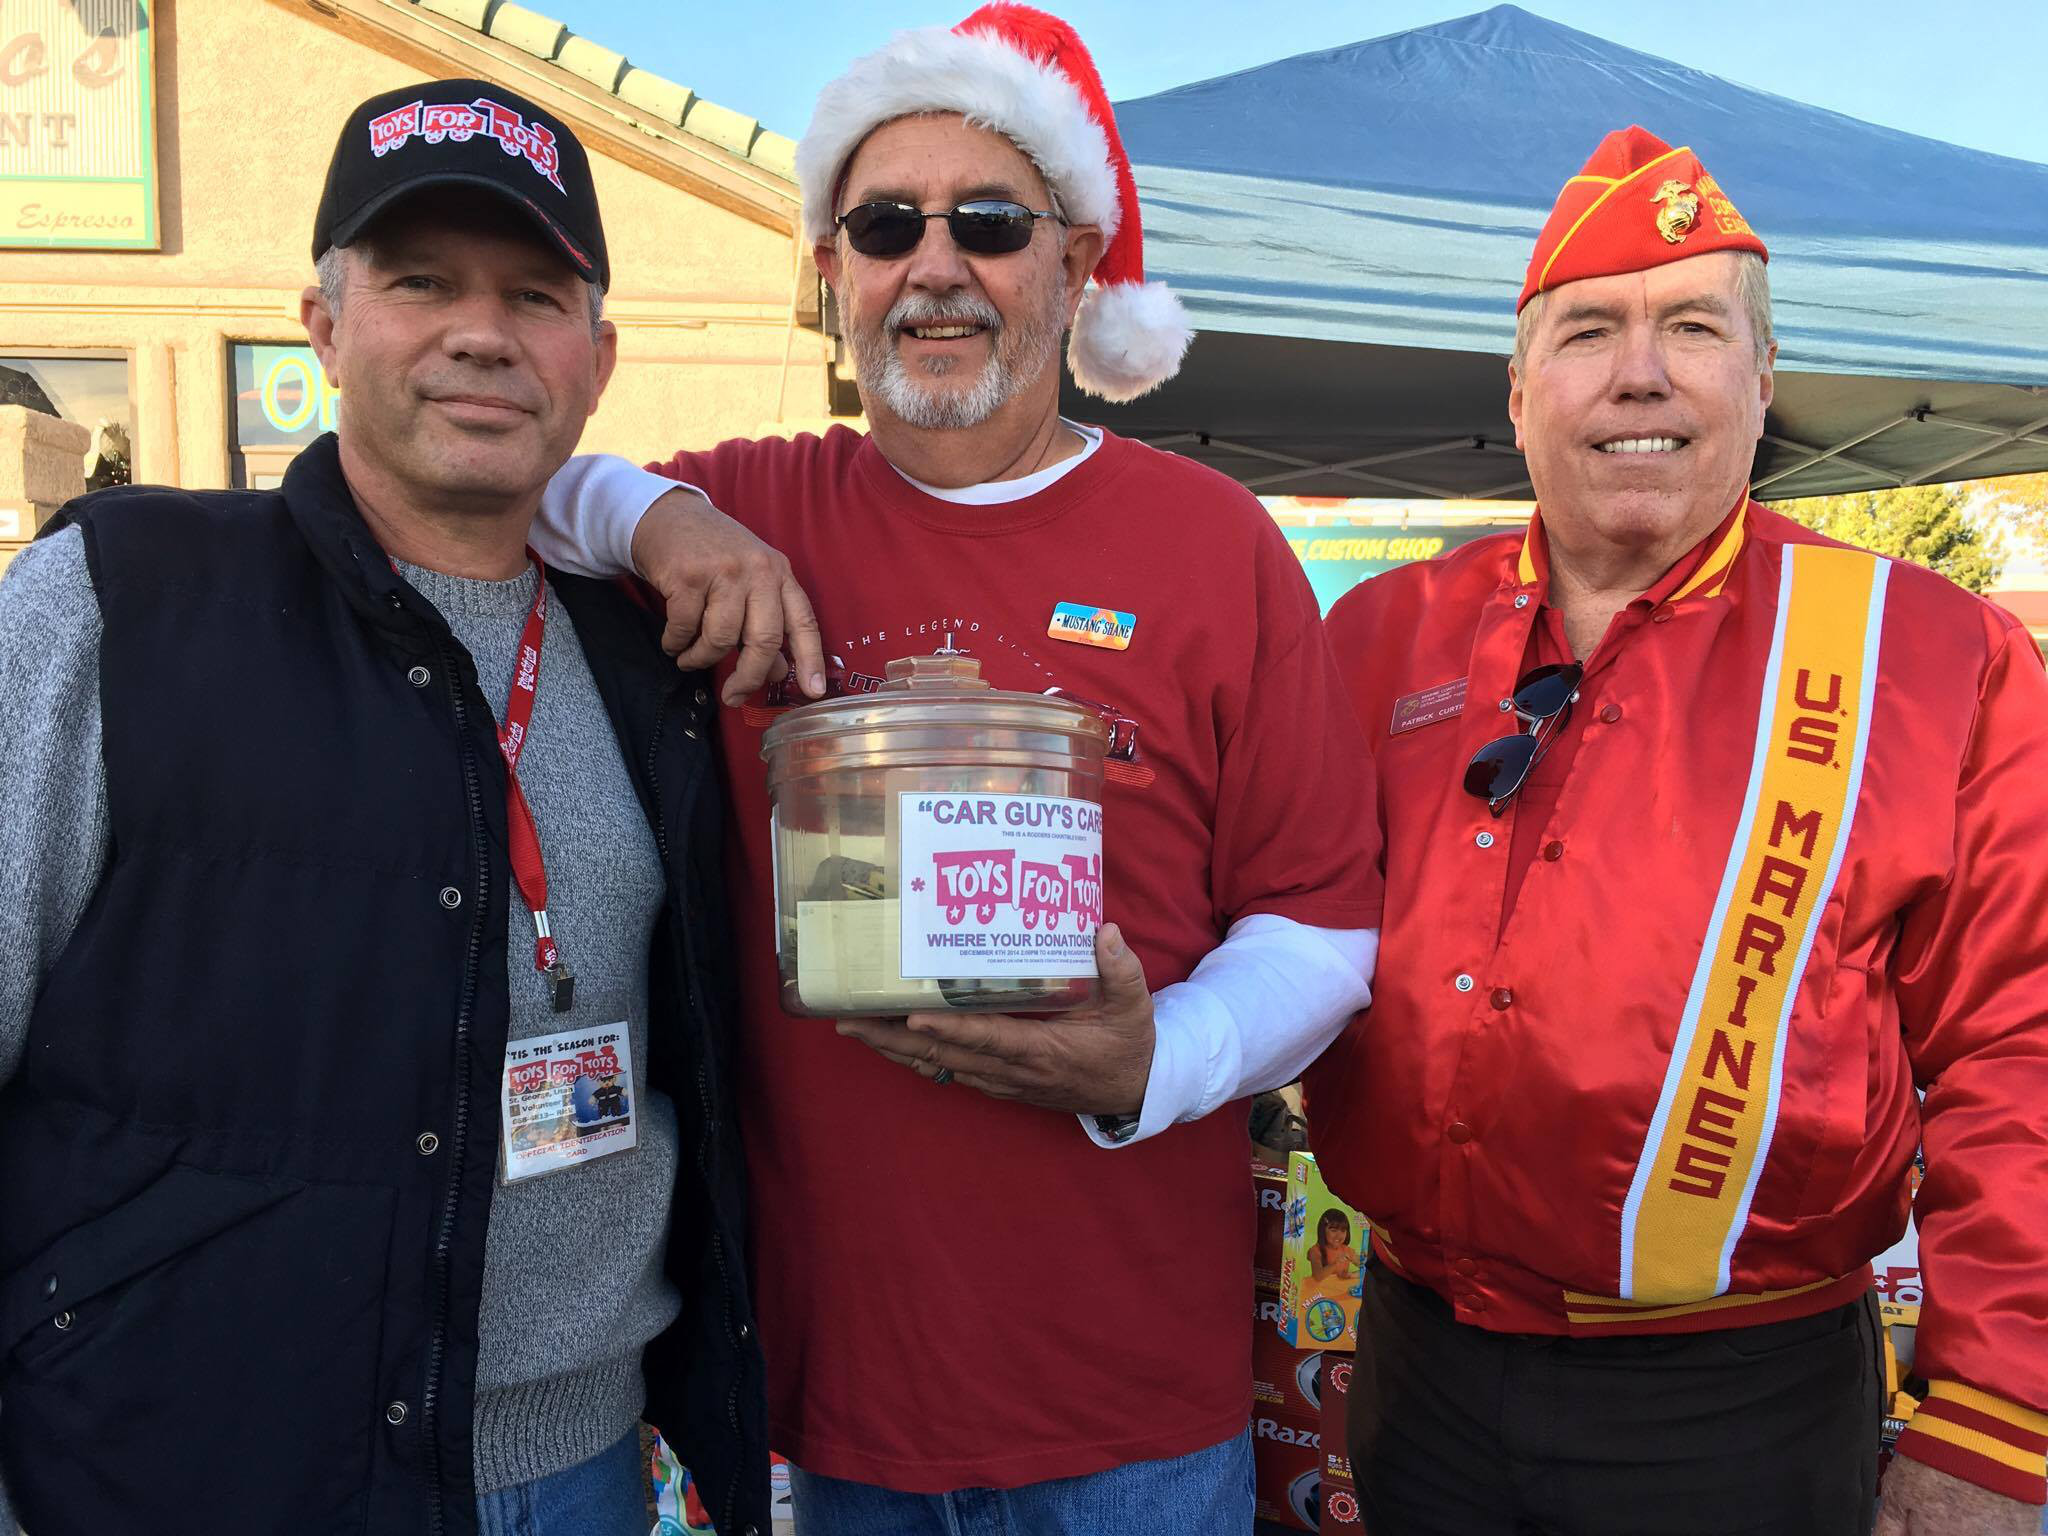 L-R: Rick Massey, Southern Utah Toys for Tots coordinator; Shane Dastrup, president of the Southern Utah Mustang Owners Association; Patrick Curtis, St. George, Utah, Dec. 10, 2016 | Photo by Sheldon Demke, St. George News